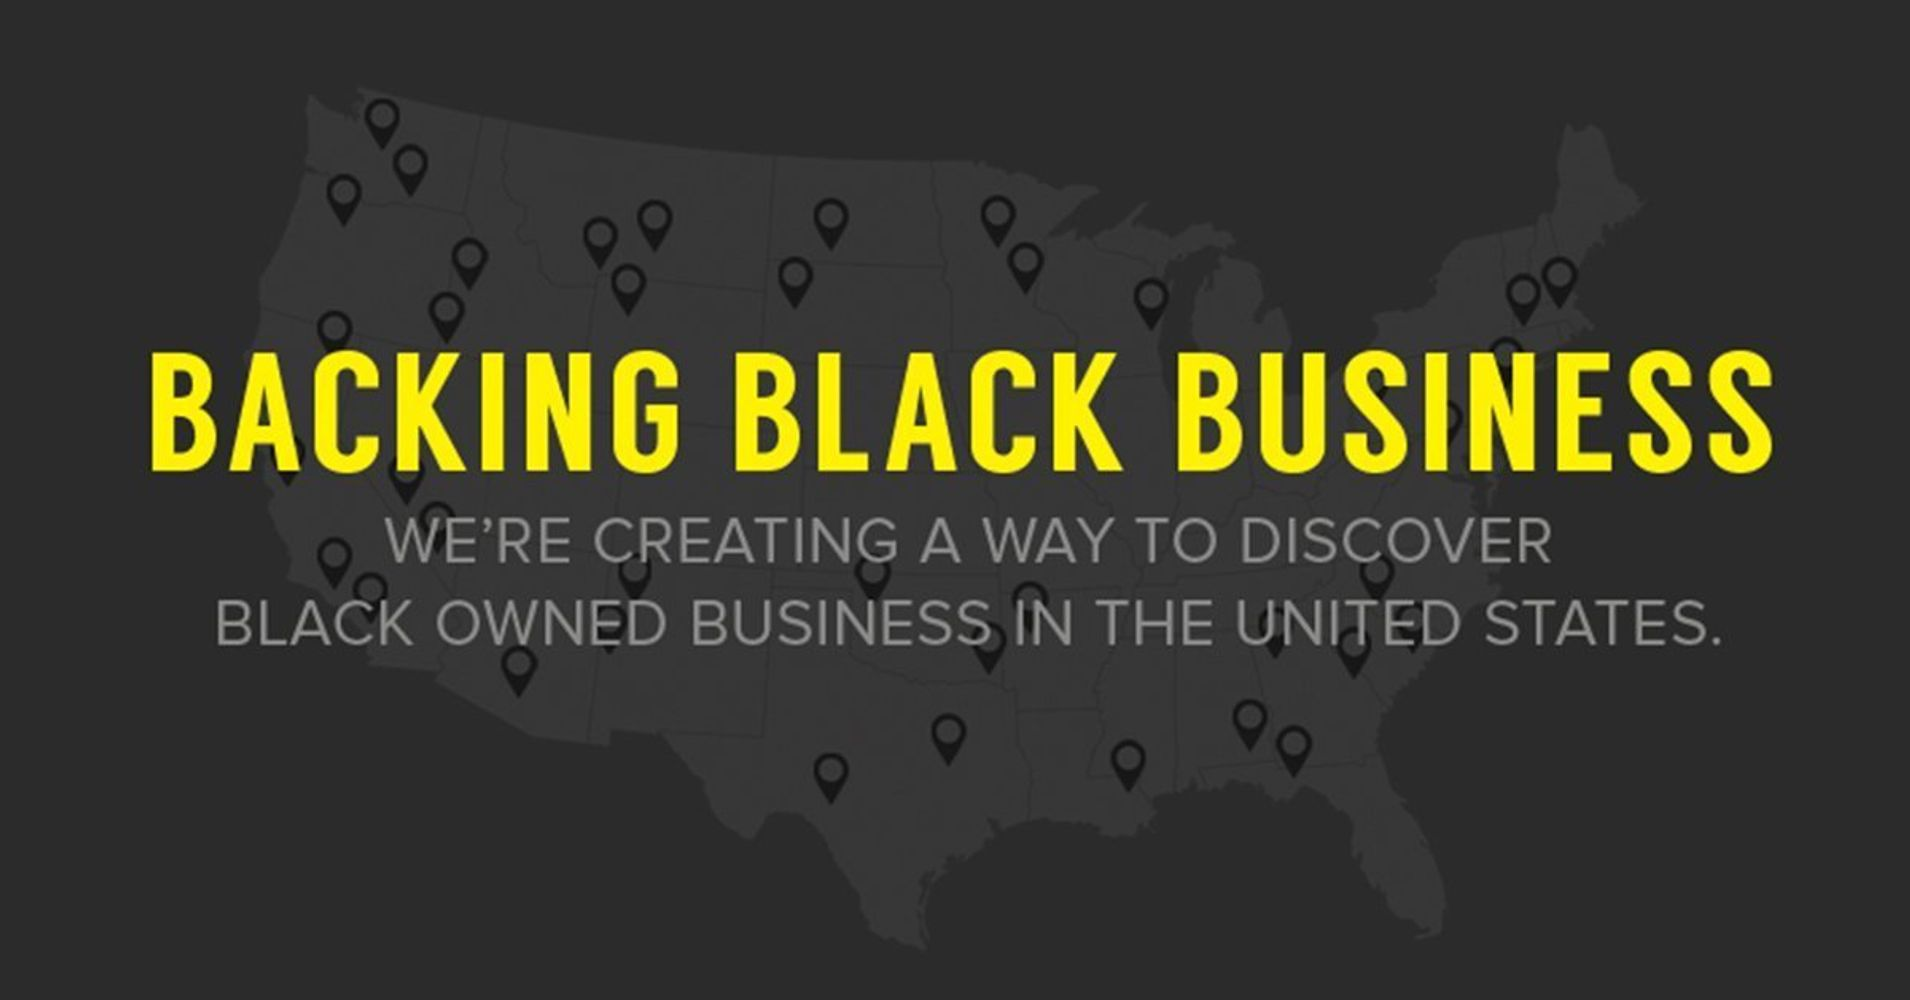 Black Lives Matter Launches Website To Promote Black Owned